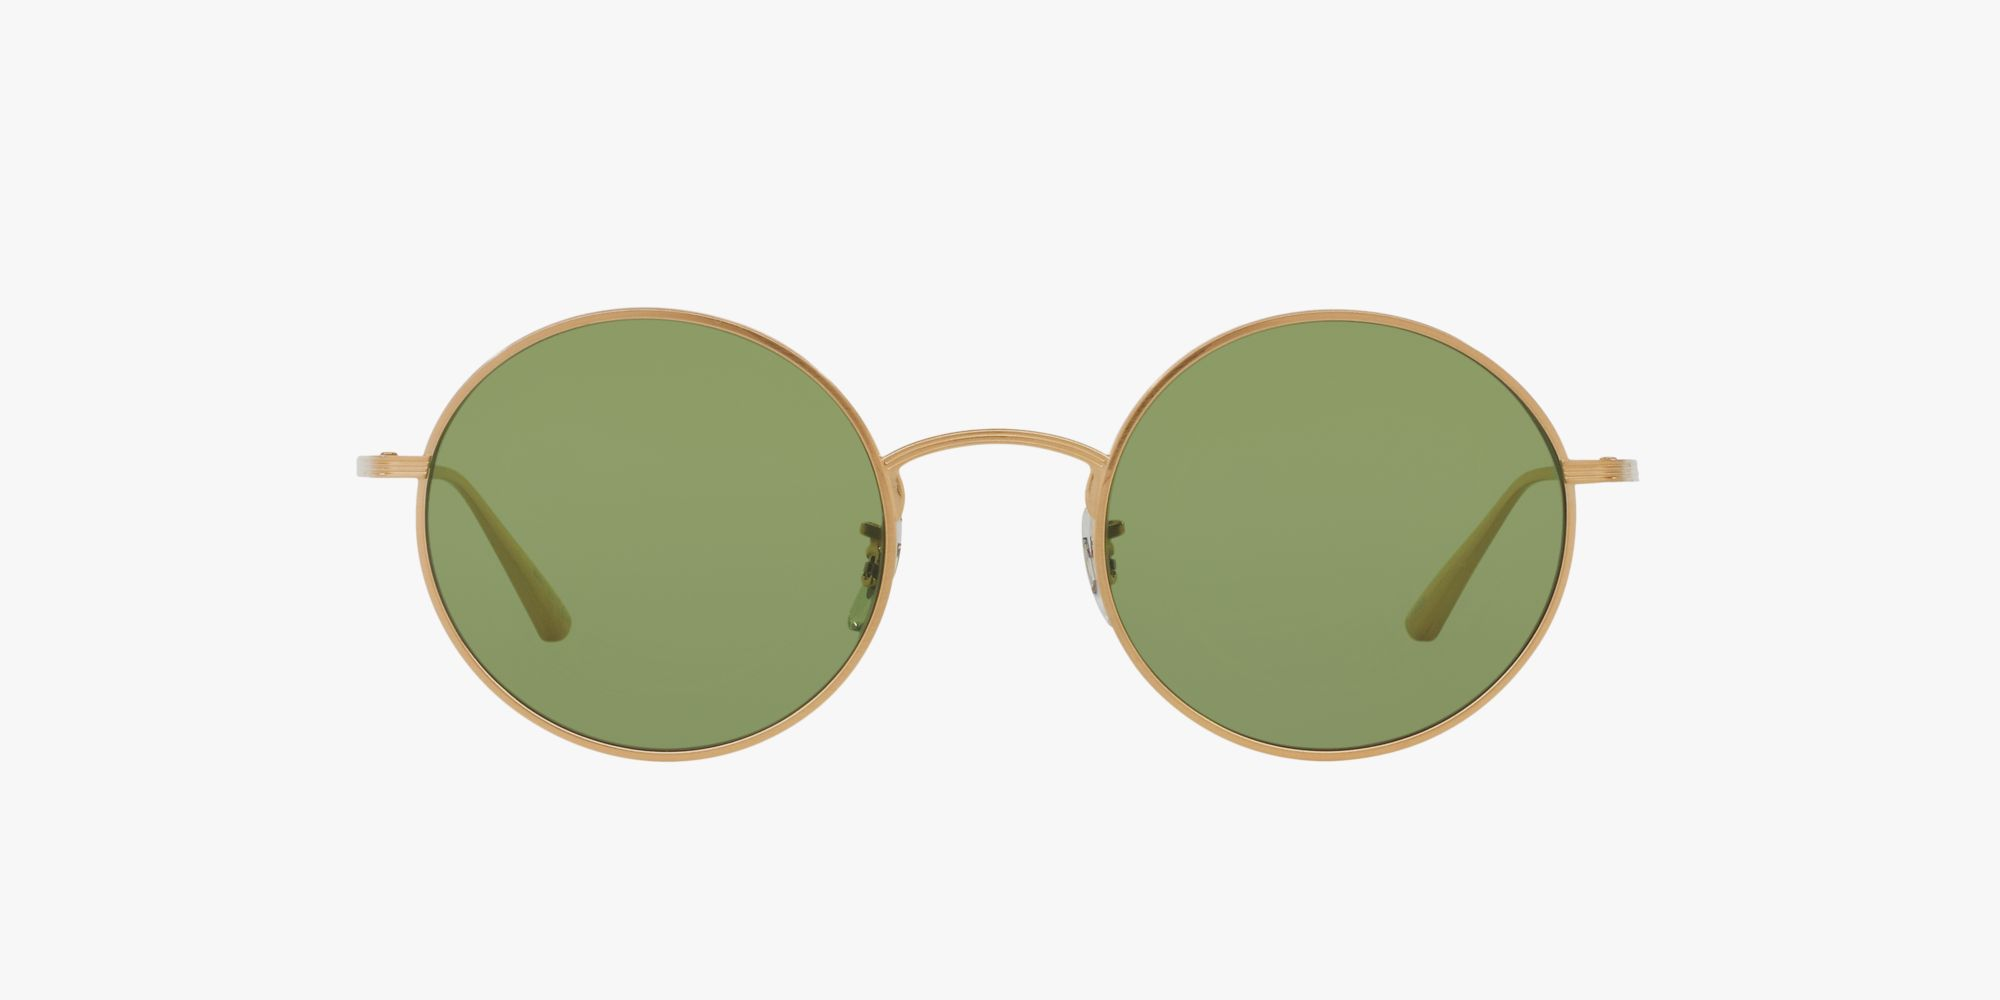 40a5fbc1bb Sun OV1197ST - Brushed Gold - Green - Titanium